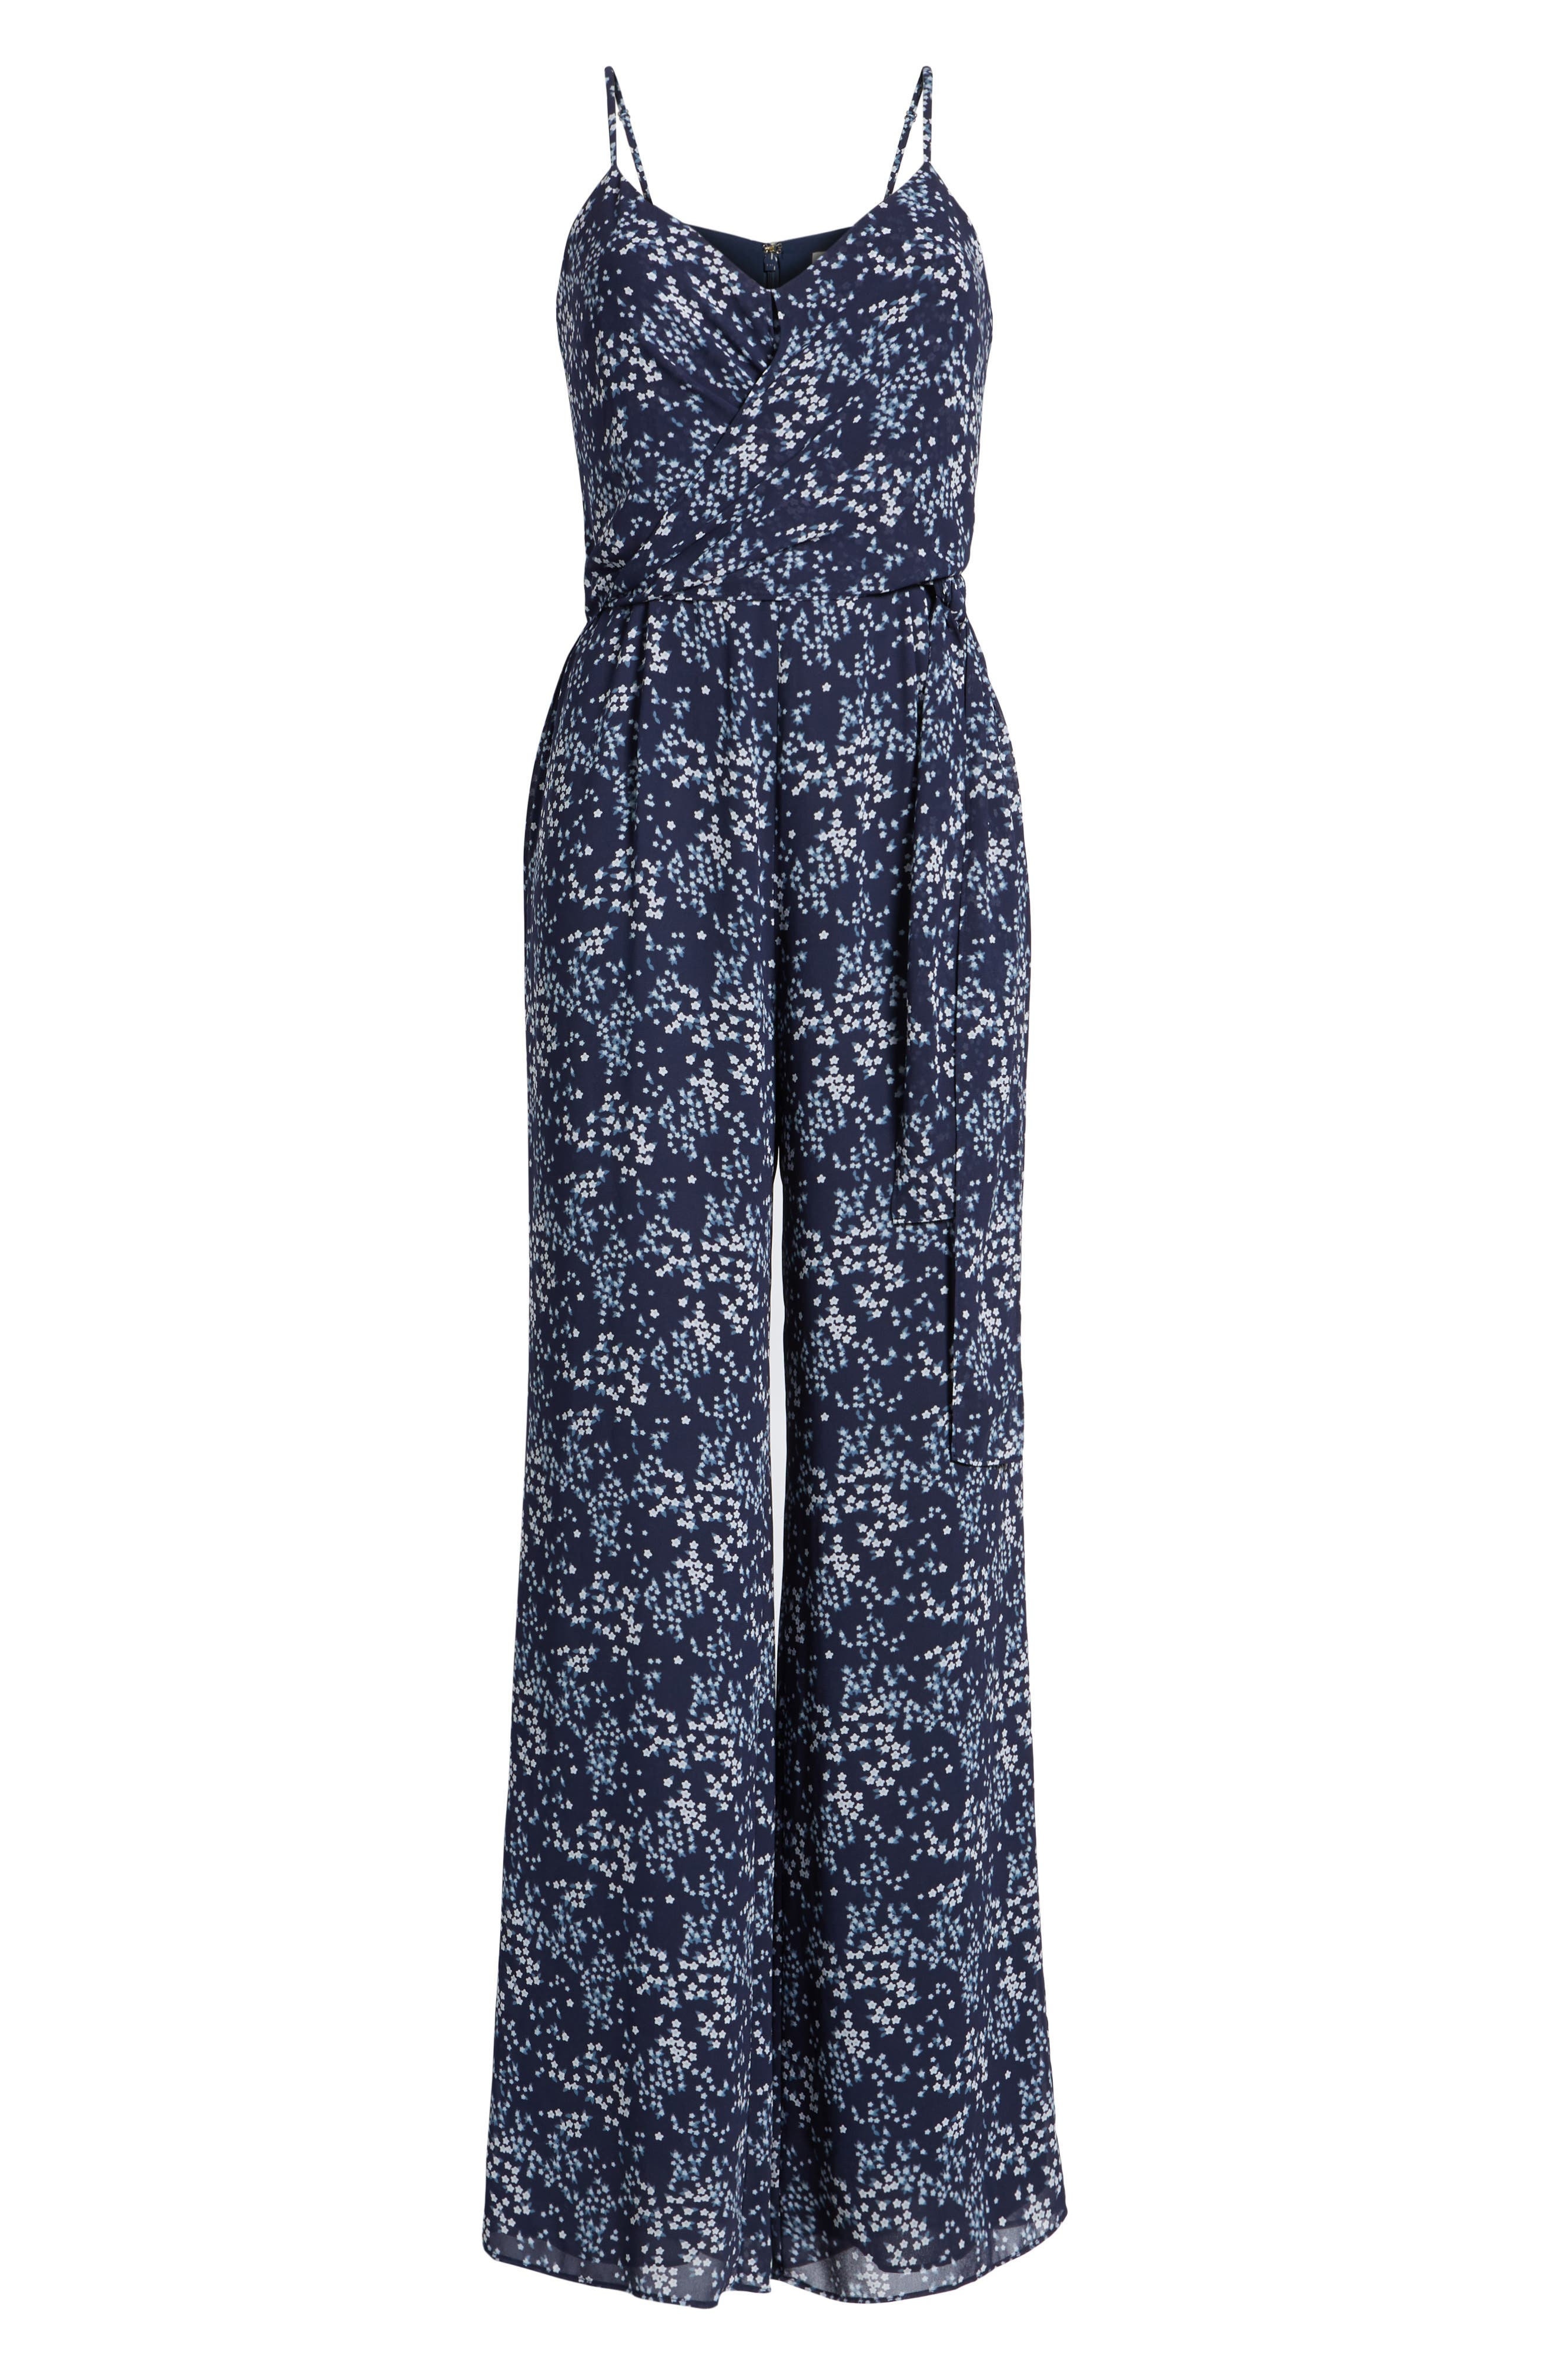 Scattered Blooms Jumpsuit,                             Alternate thumbnail 6, color,                             True Navy/ Light Chambray